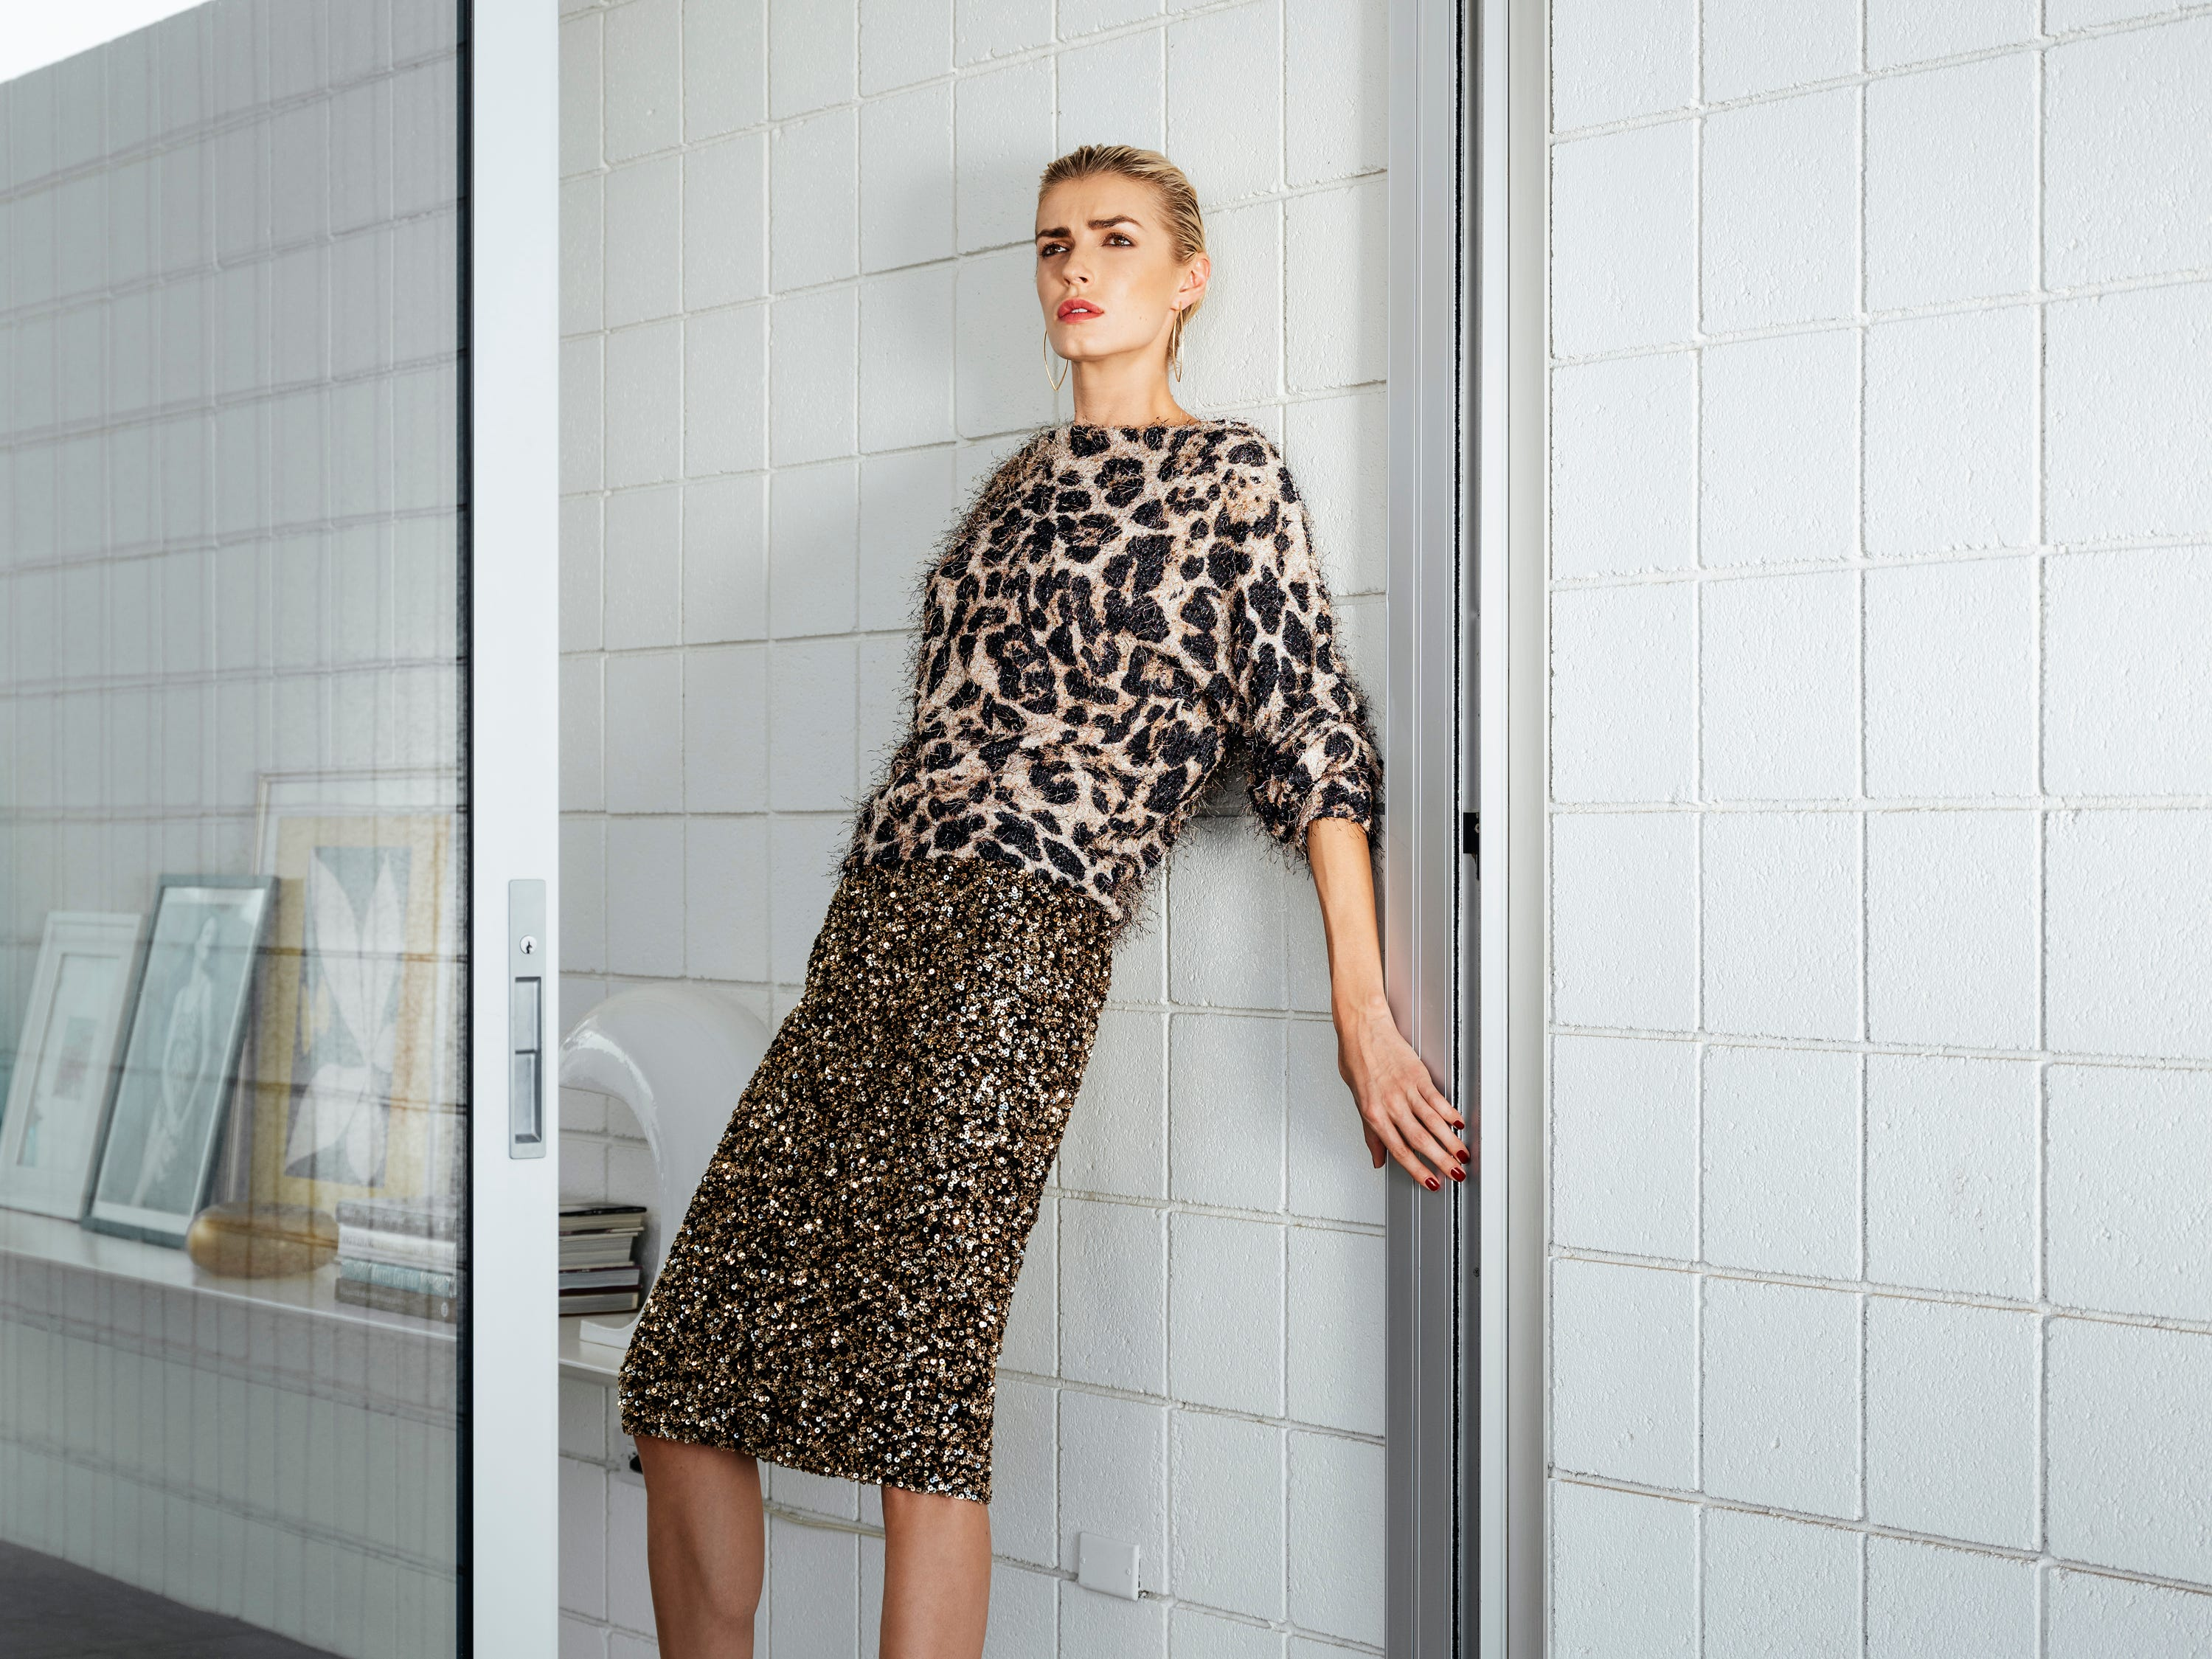 Loyd/Ford leopard sweater and  sequin skirt, at loydford.com.  Gucci stilettos and pink socks, stylist's own. BB.one earrings, at bboneapparel.com. (Styling by Neil Cohen; hair and makeup by Chelsea Dorris; model: Milena Ilina; creative direction: Kristin Scharkey; location: Desert One, Palm Springs)